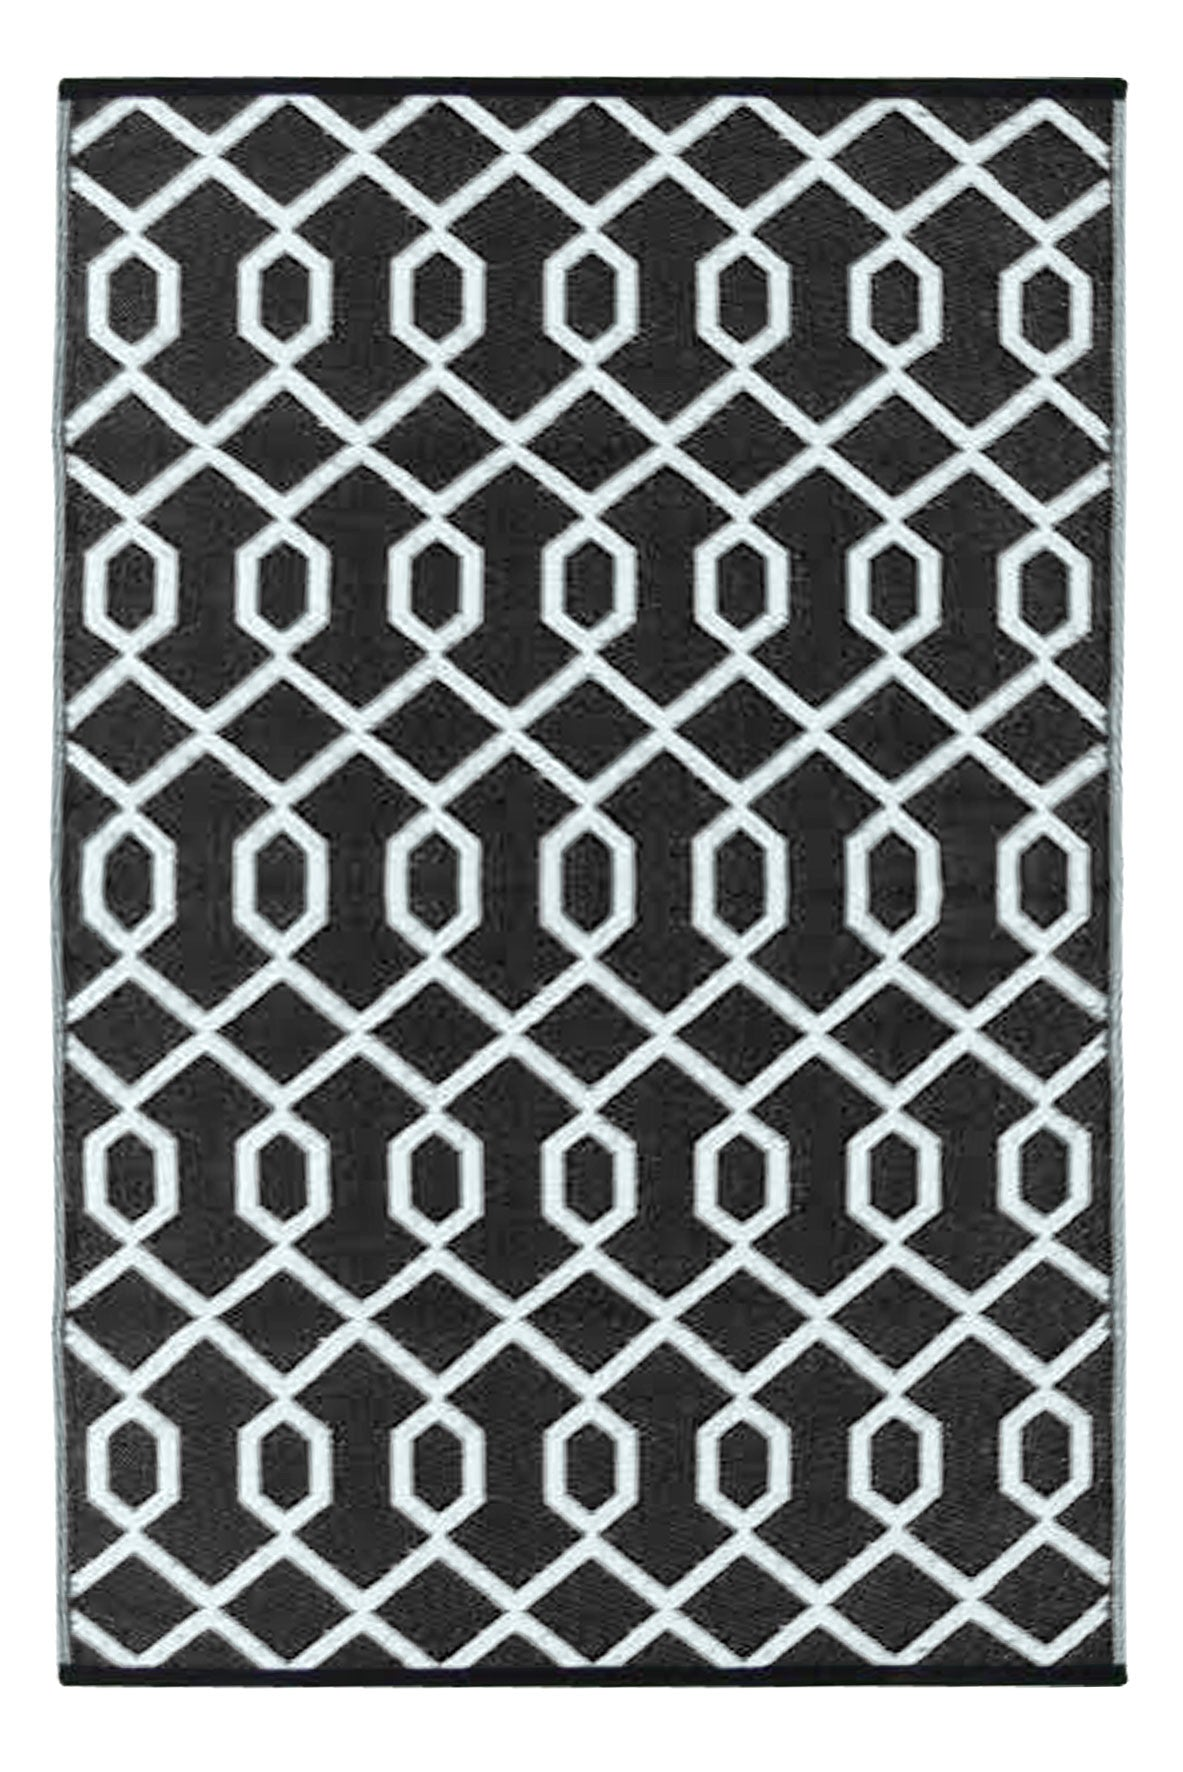 Valencia Black and White Rug - greendecore.co.uk